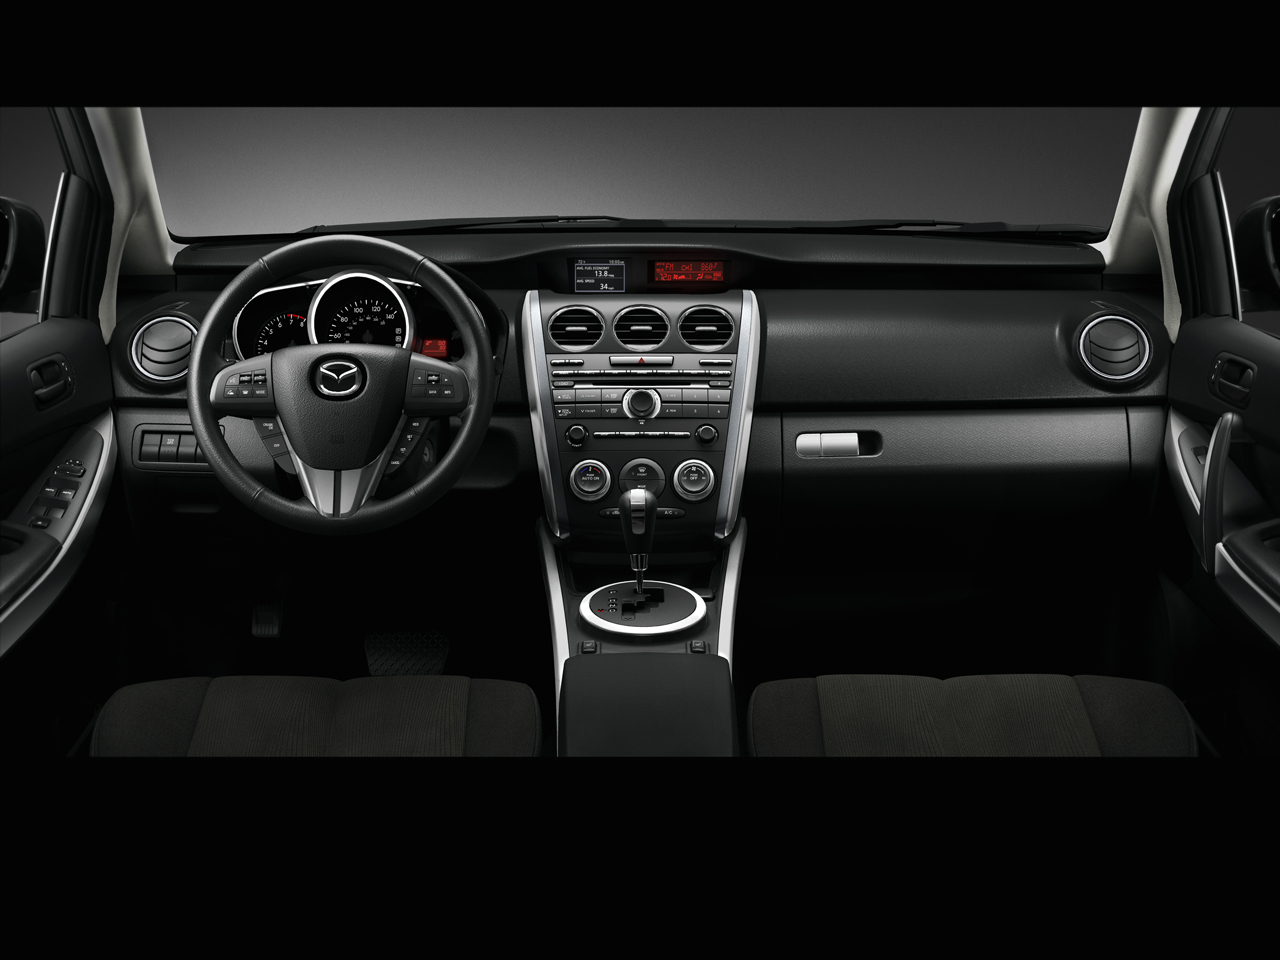 2010 mazda cx-7 review - top speed